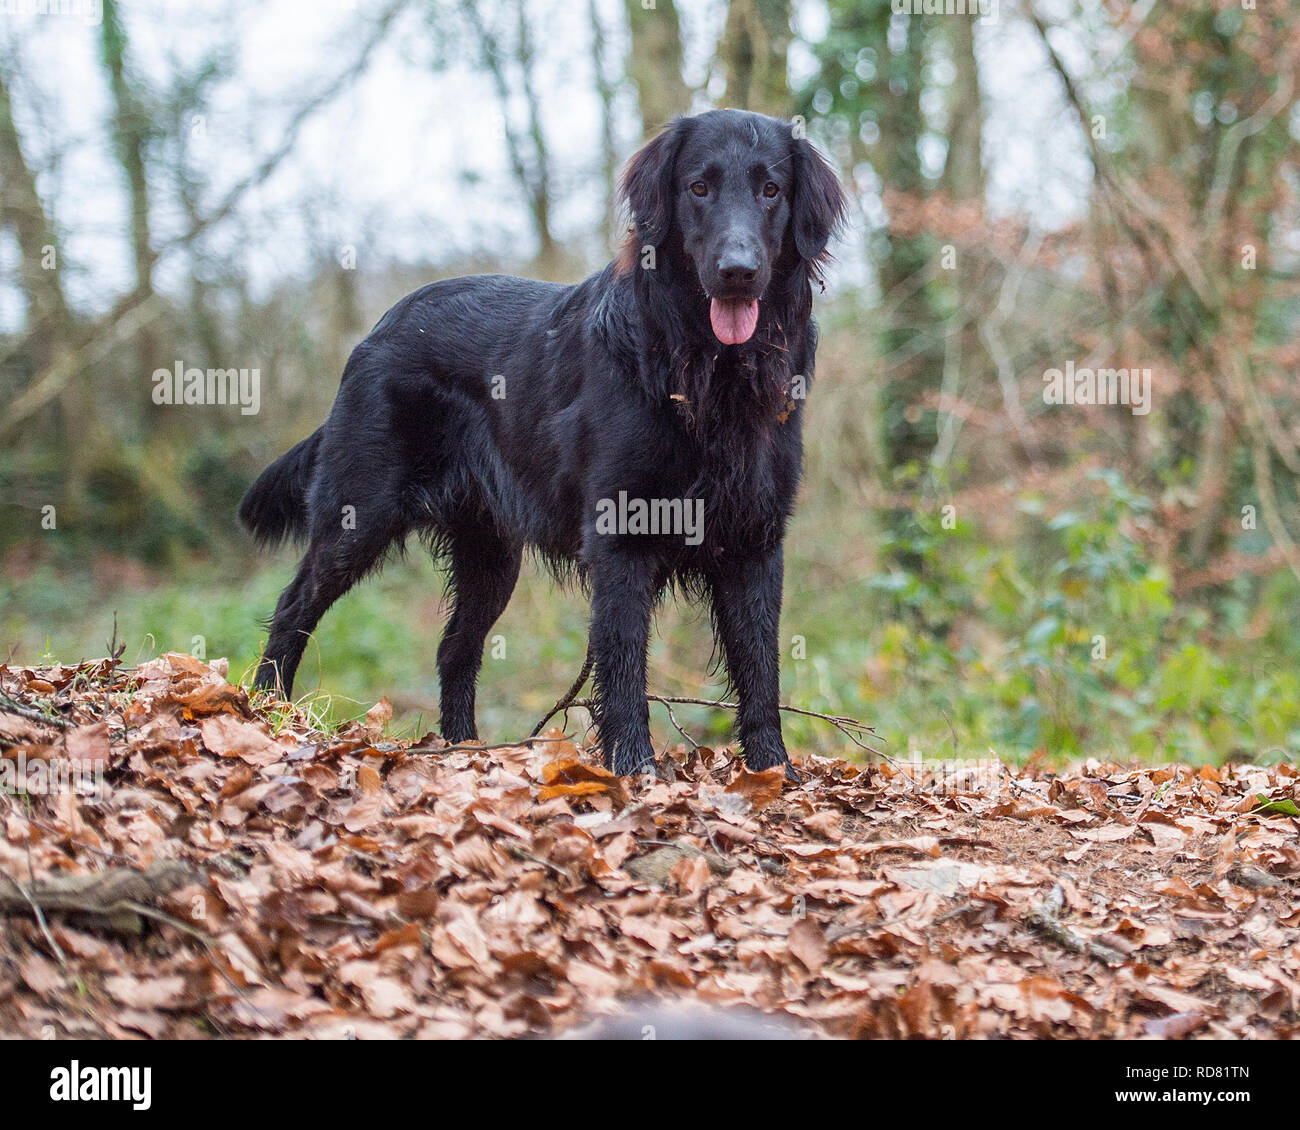 flatcoated retriever dog Stock Photo: 231902405 - Alamy